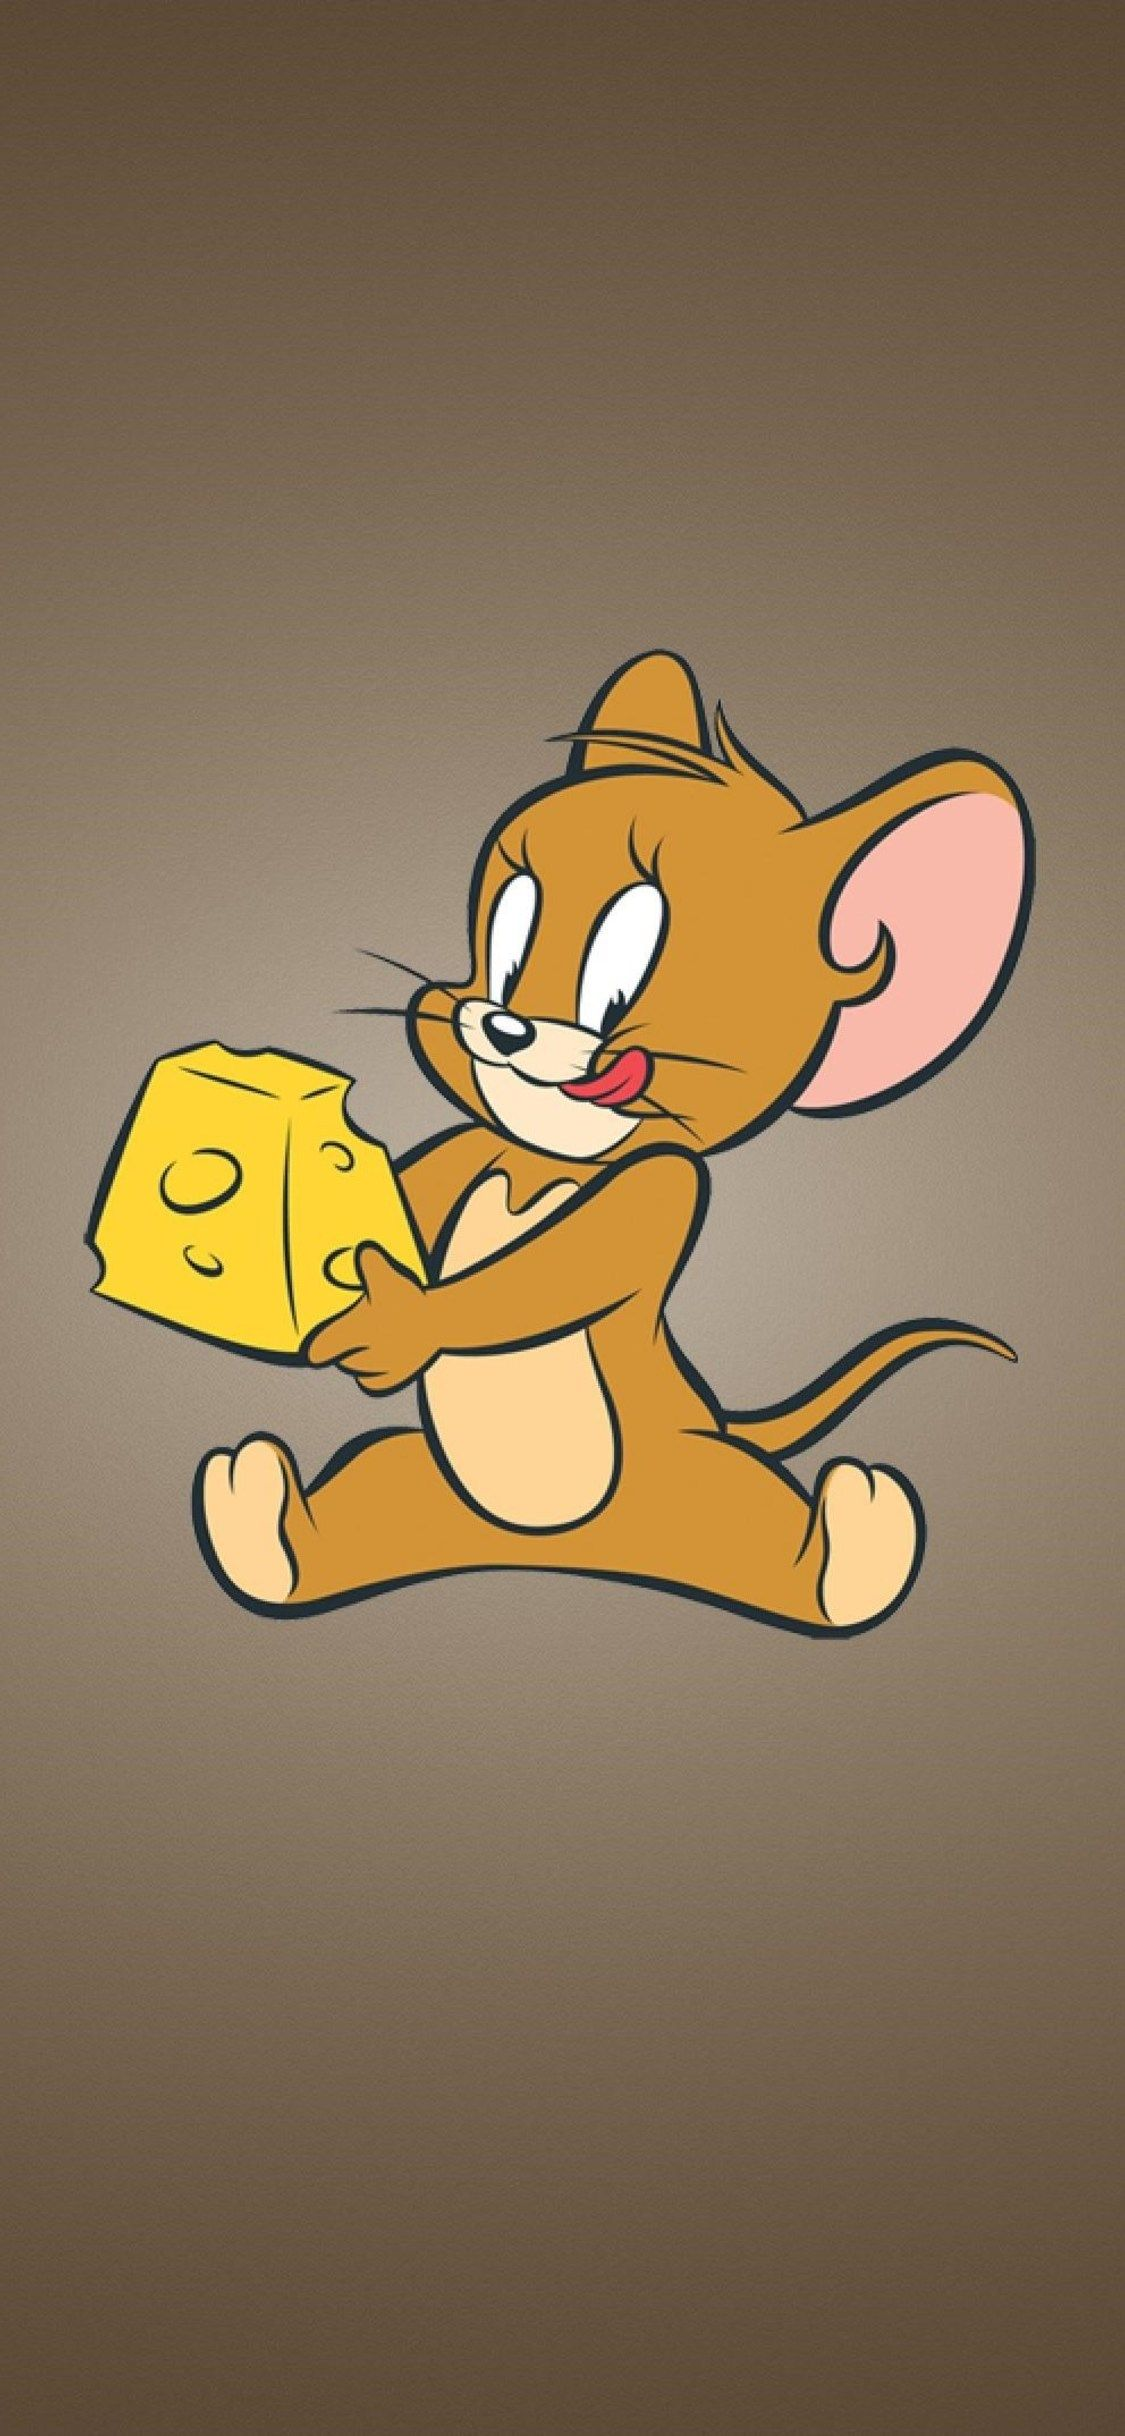 Tom And Jerry Iphone Wallpapers Top Free Tom And Jerry Iphone Backgrounds Wallpaperaccess